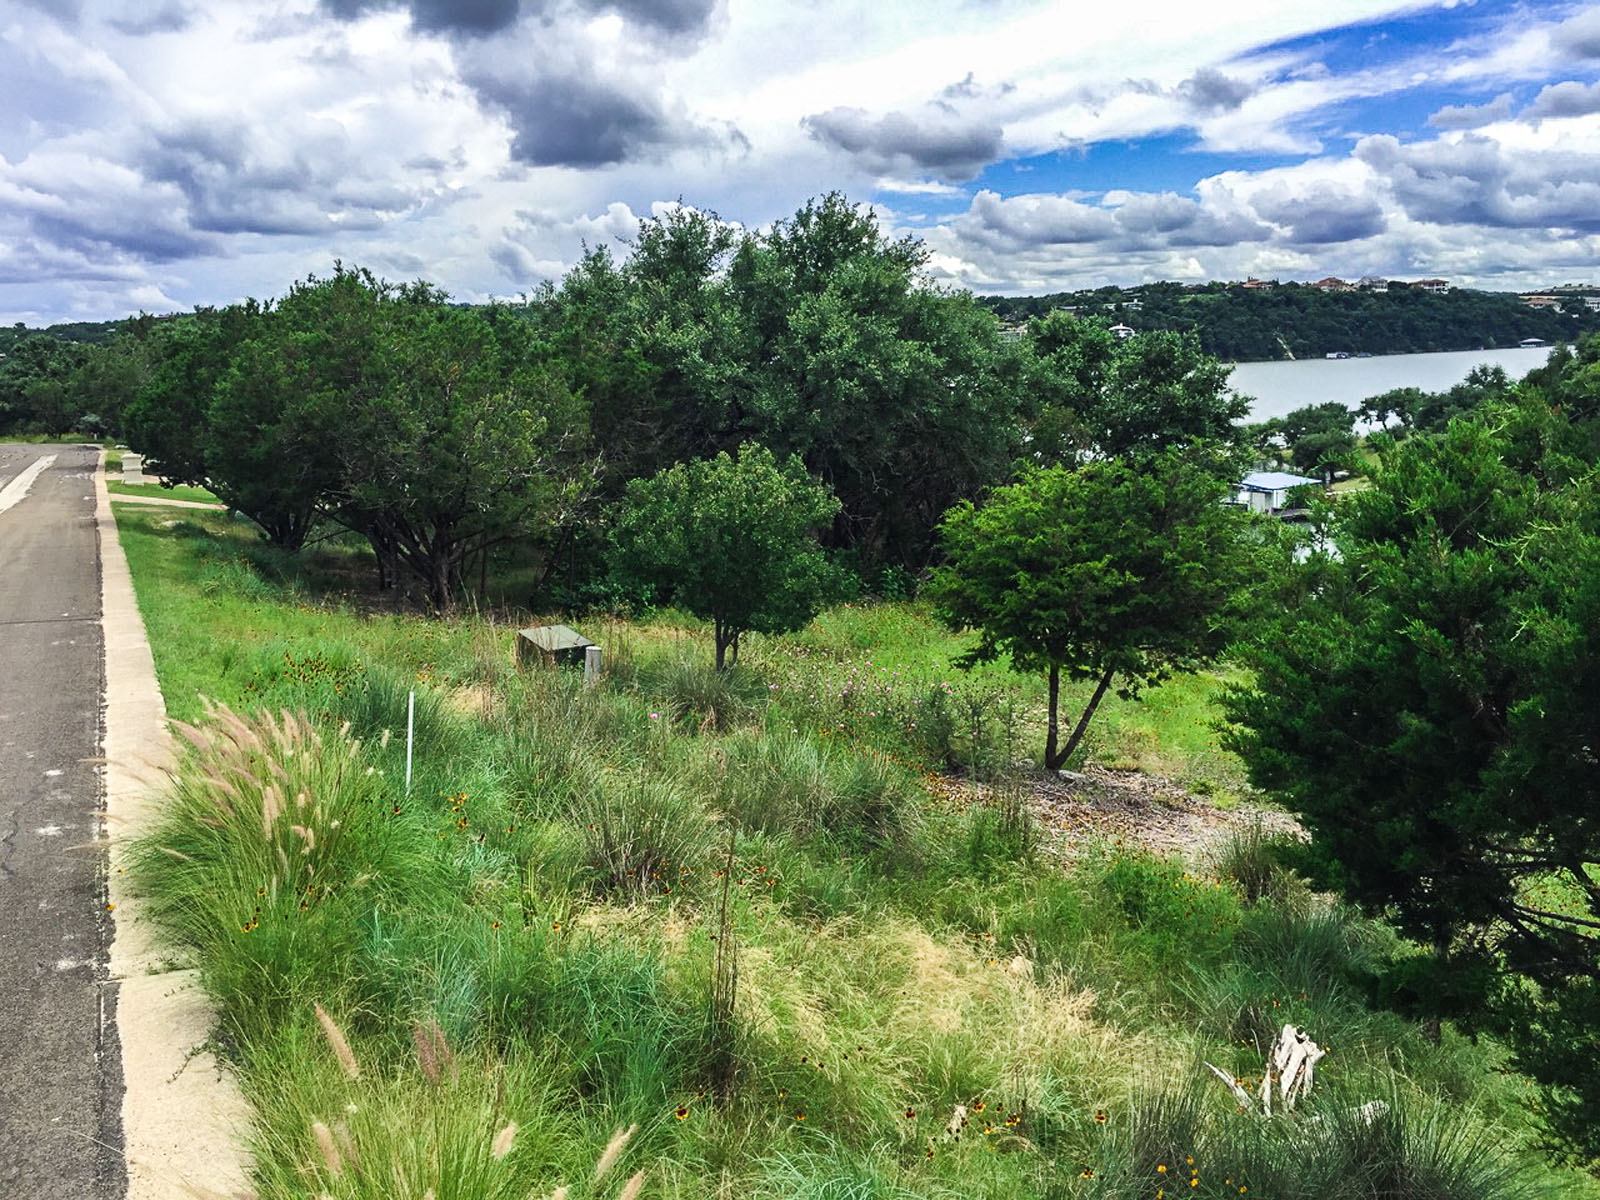 Land for Sale at Build Your Dream Home on Lake Travis 18603-05 Lakeland Dr Point Venture, Texas 78645 United States